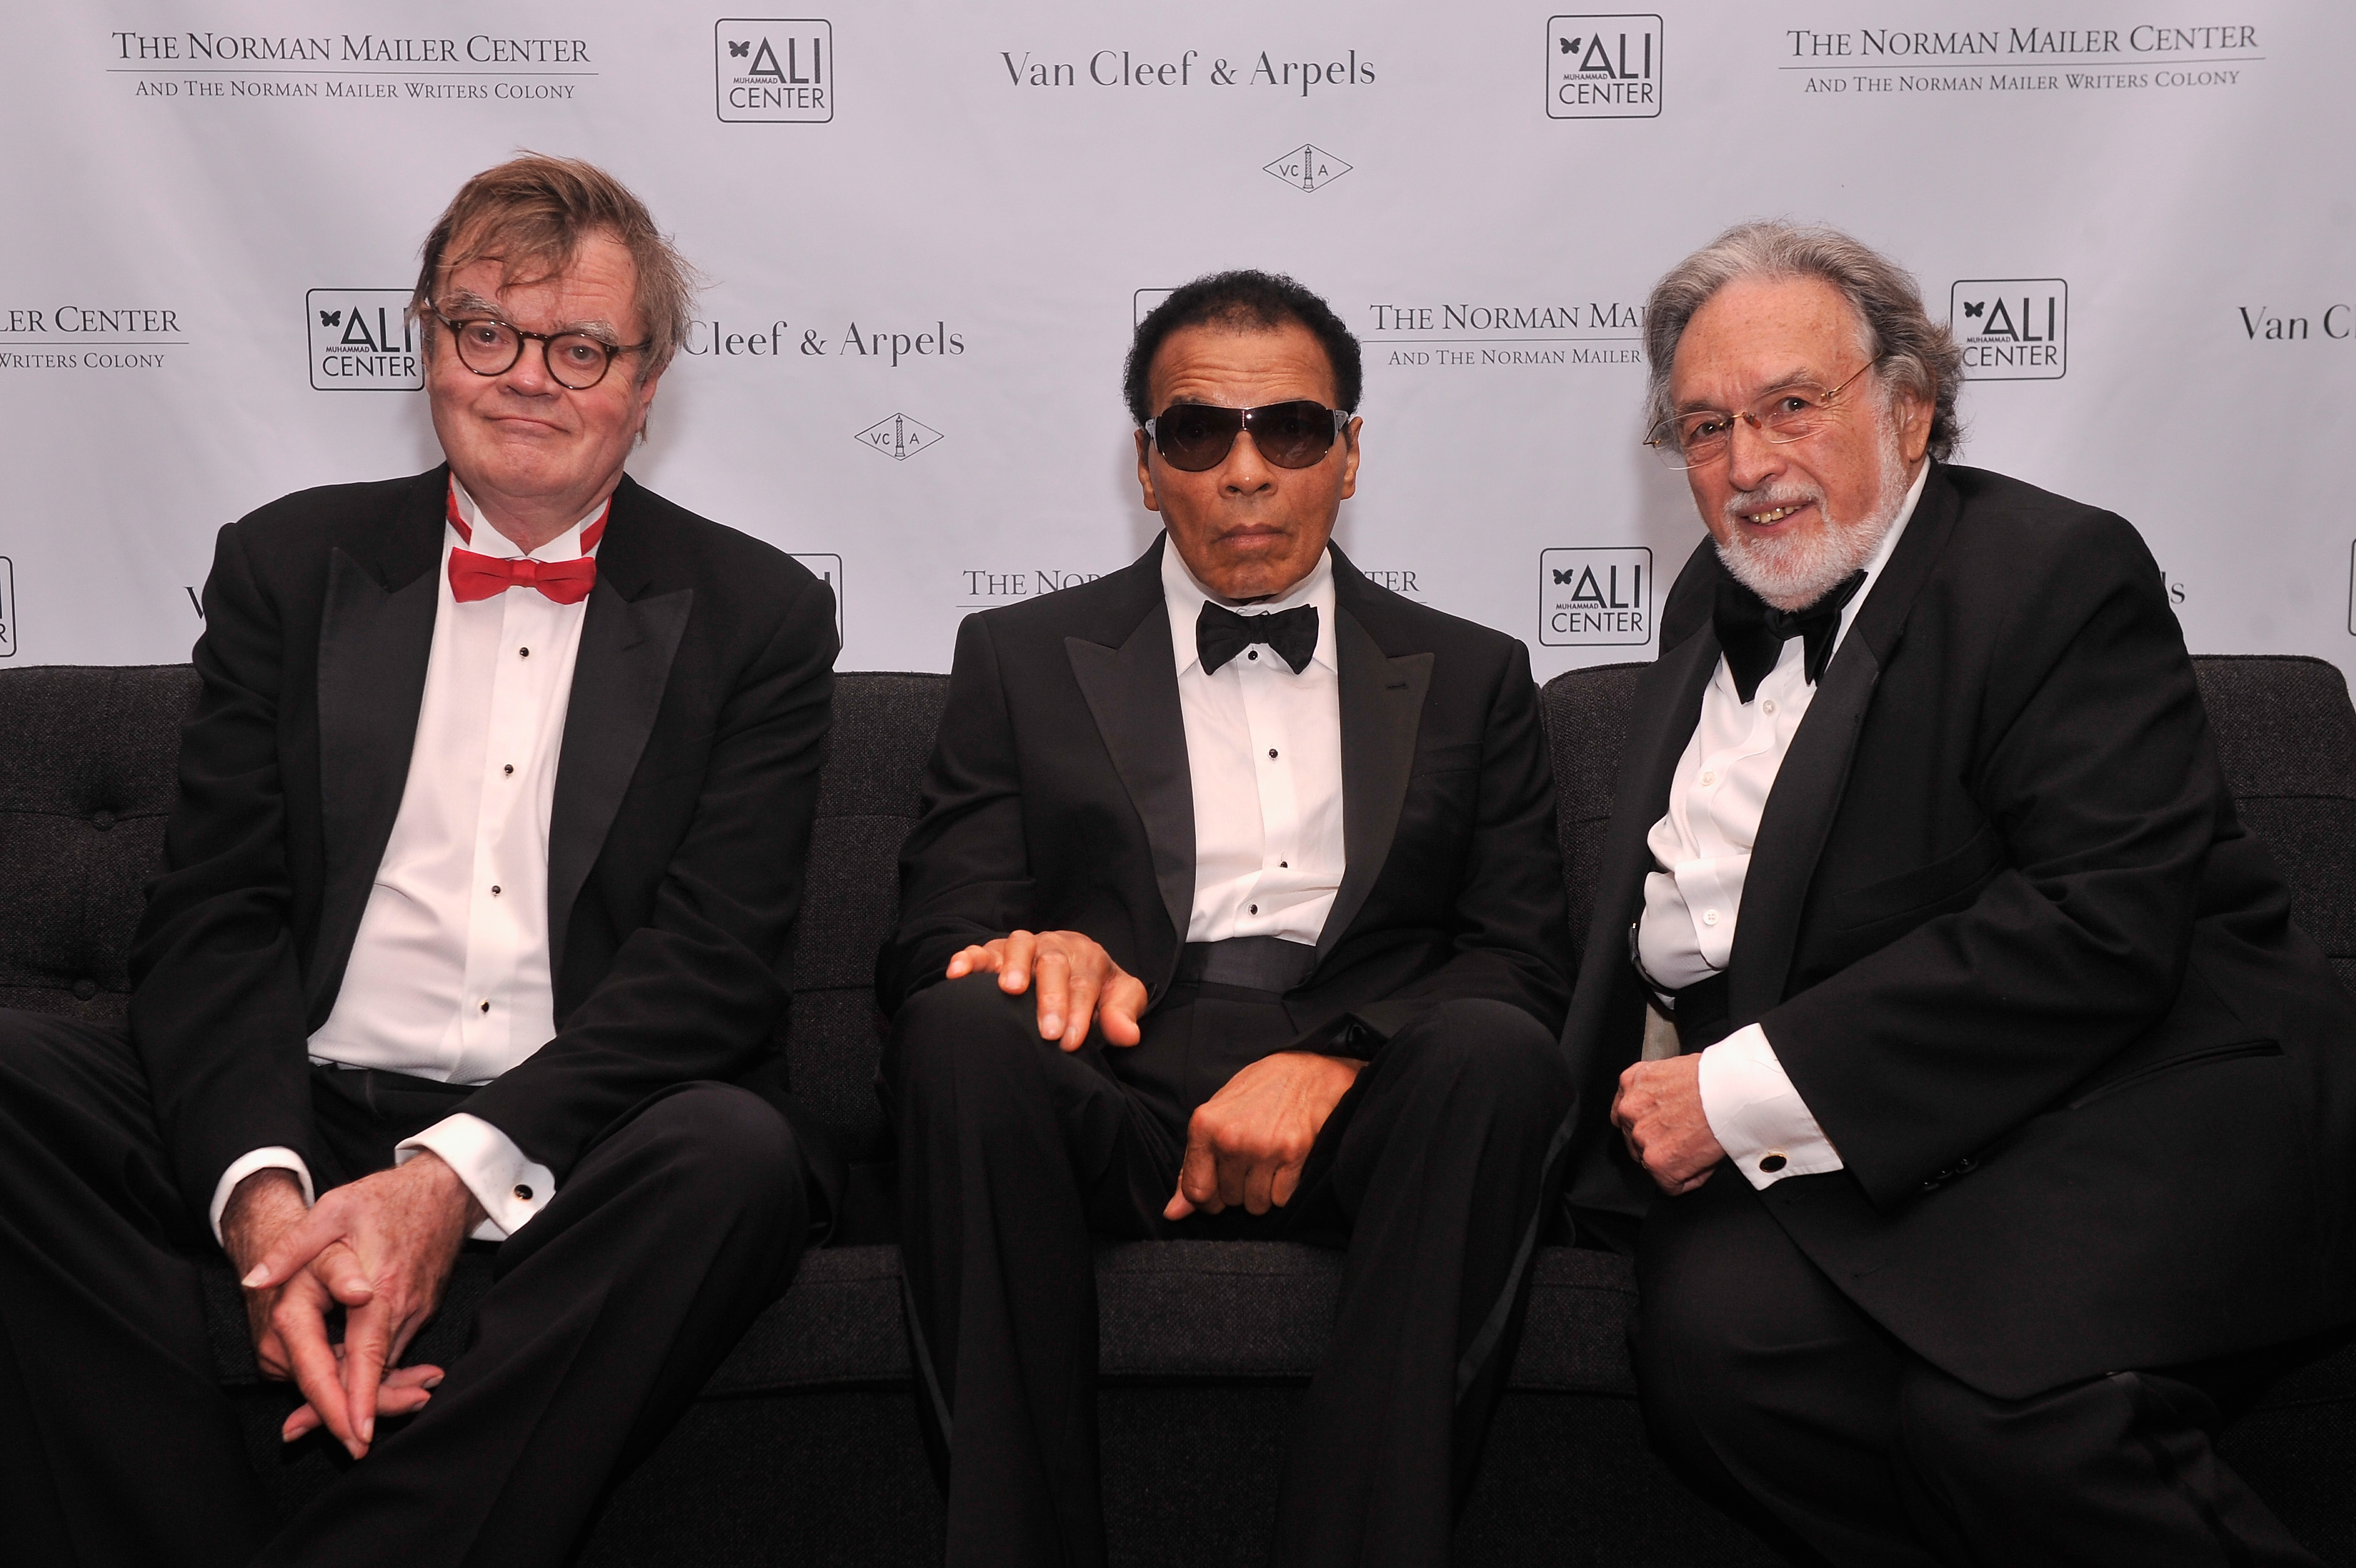 Garrison Keillor, former boxing champion Muhammad Ali and Lawrence Schiller attend the Norman Mailer Center 4th Annual Benefit Gala on October 4, 2012 in New York City. (Photo by Stephen Lovekin/Getty Images for Norman Mailer Center)